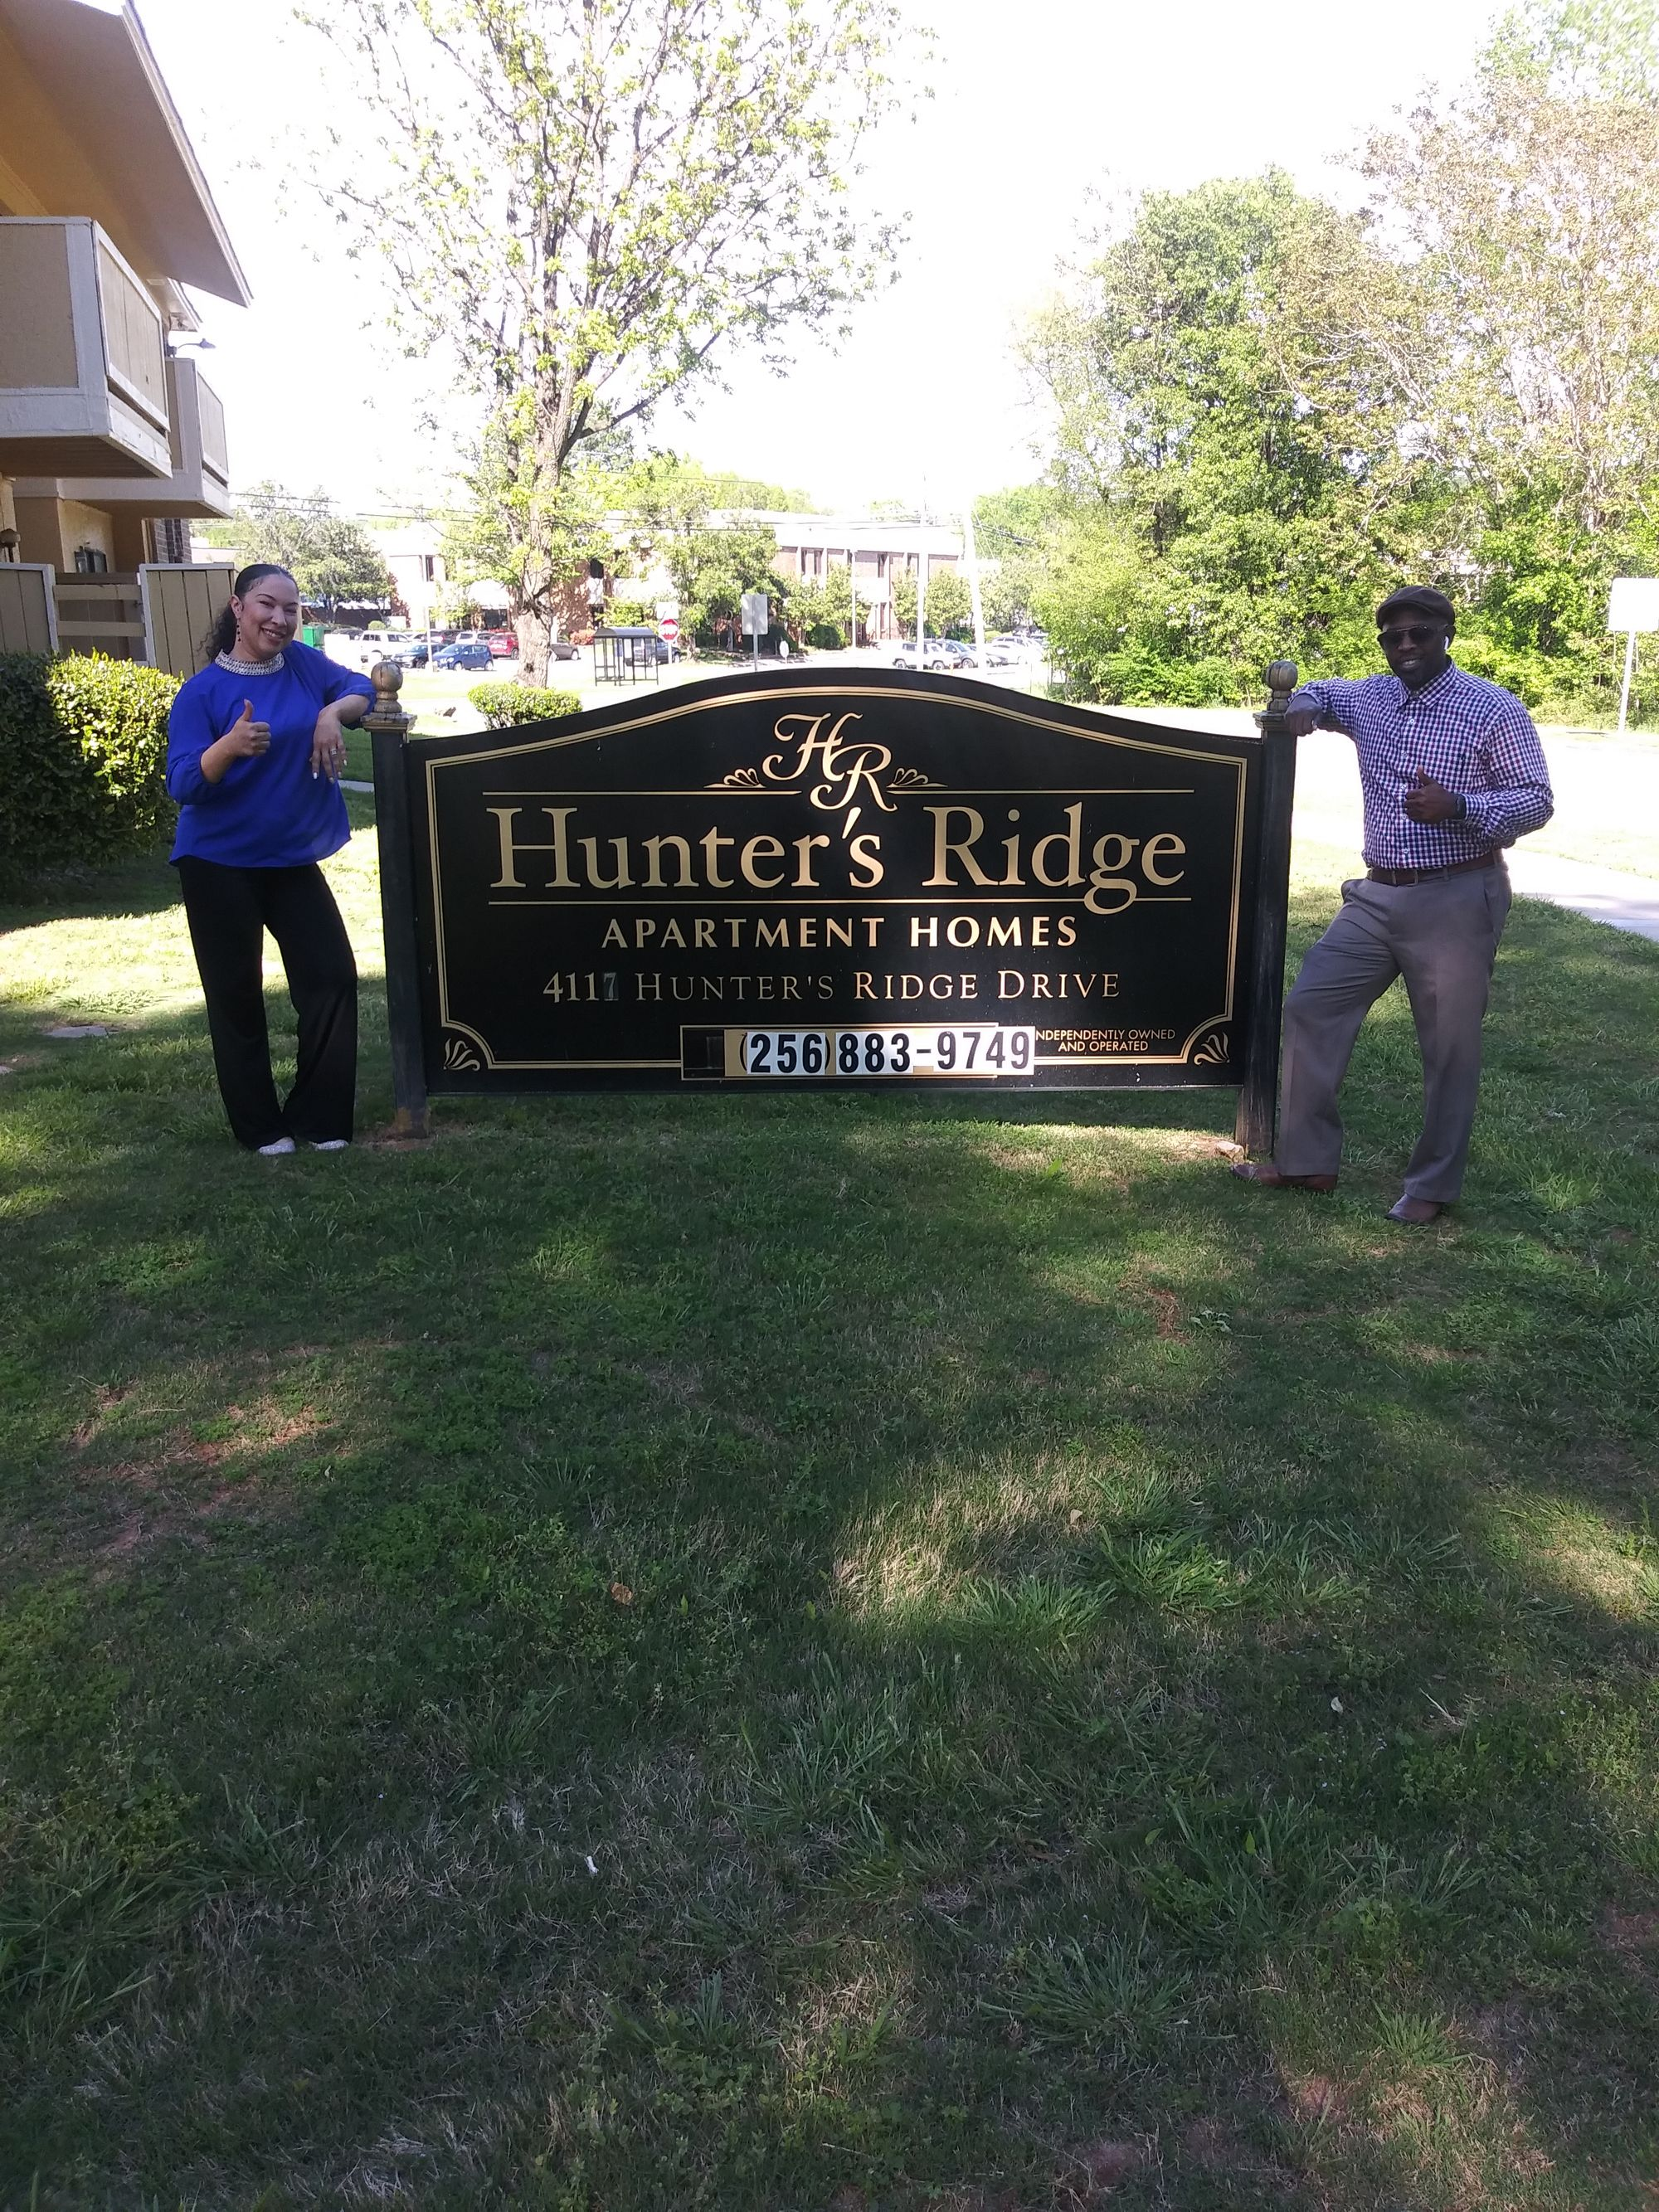 Hunters Ridge Homes Has The Most Affordable Housing Clean And Spacious Homes In Huntsville Al Call Us Asap Affordable Housing Huntsville Chalkboard Quotes